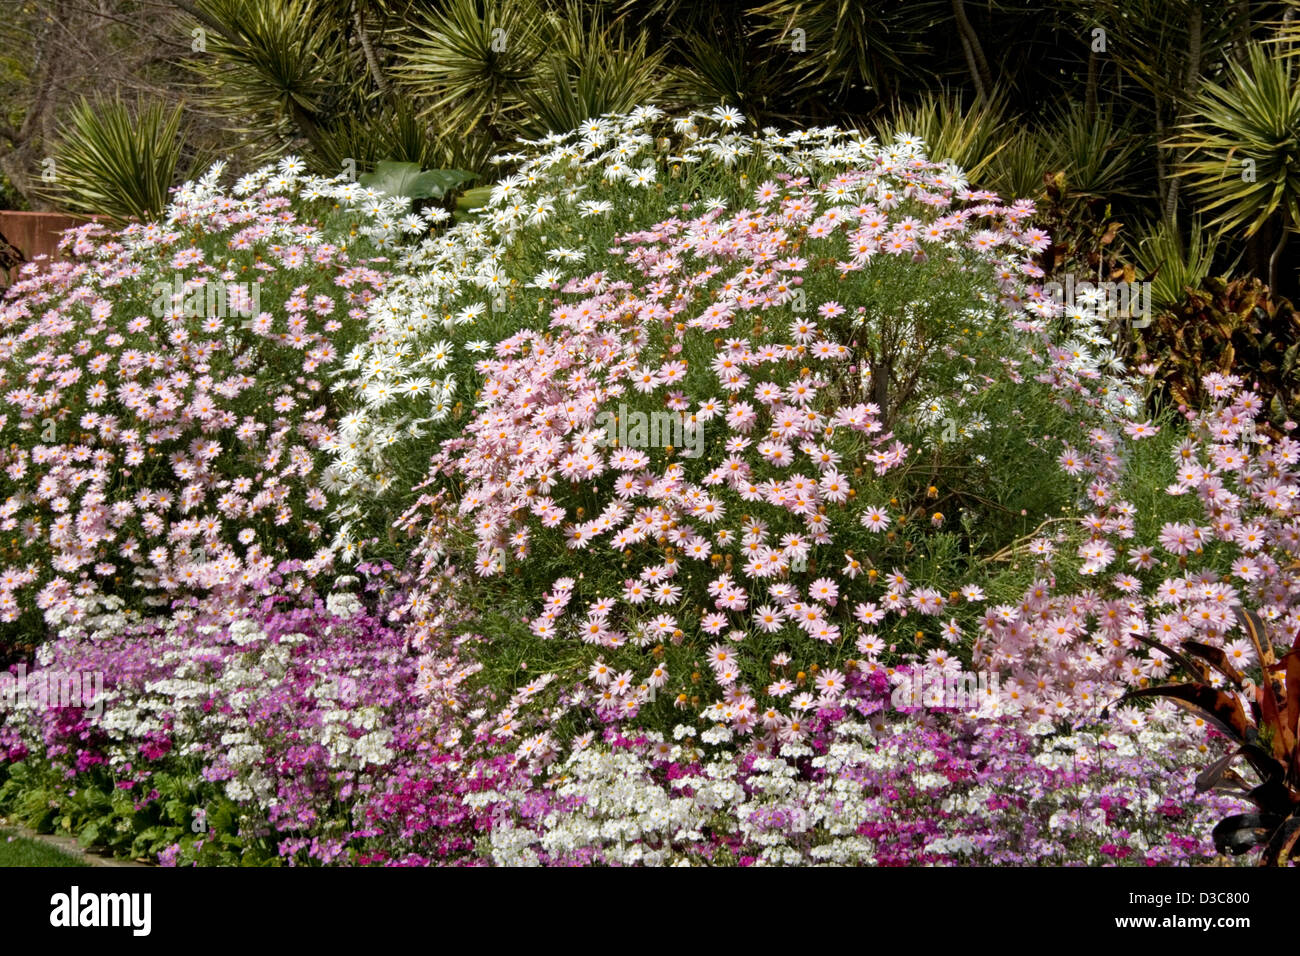 Mounds Of Pink And White Flowers And Foliage Of Osteospermum Daisies